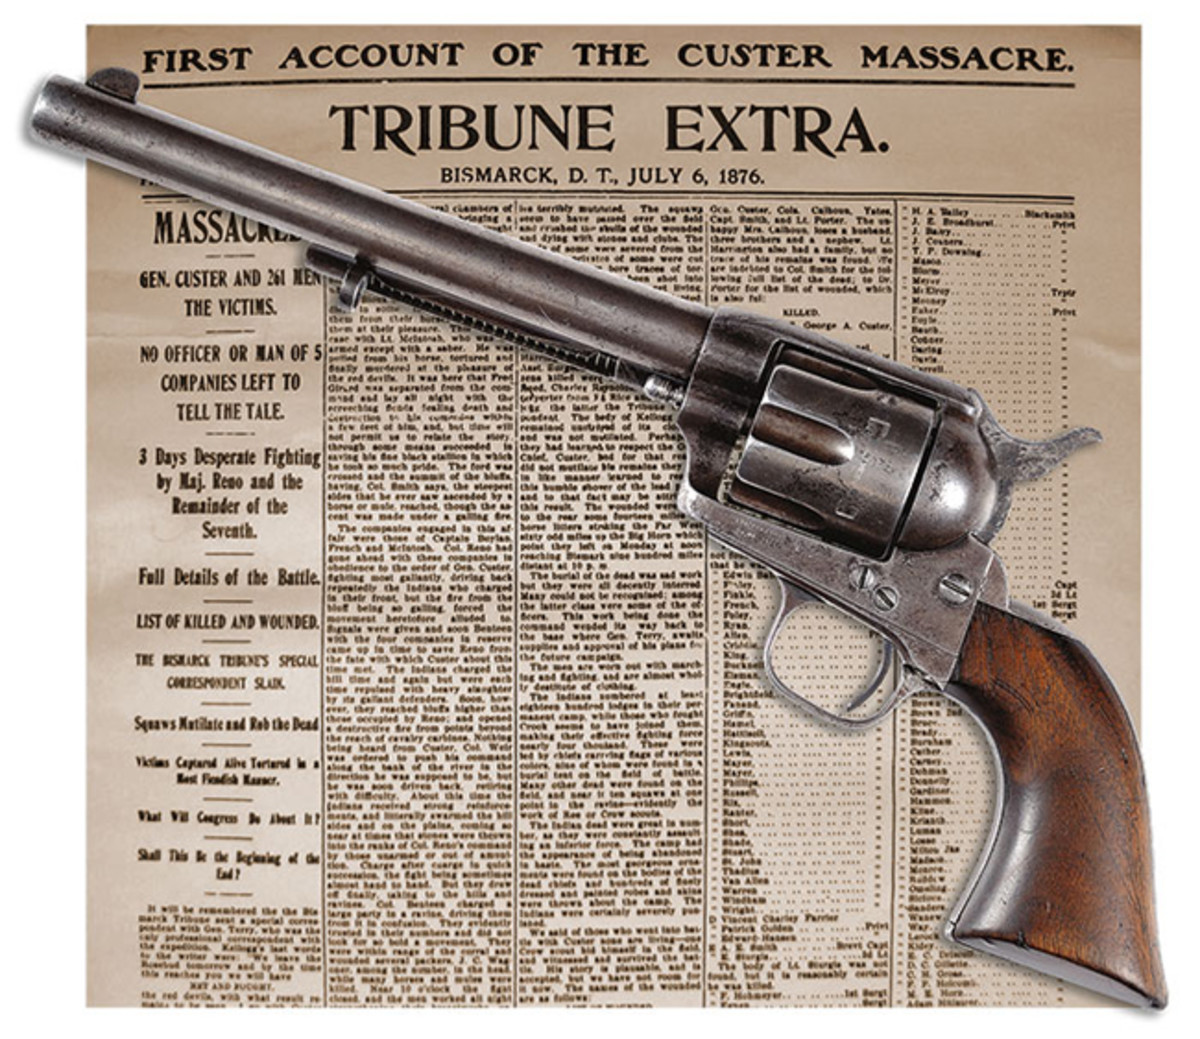 Colt Single Action Army SN 5773 Positively Proven to Have Been Used by One of Custer's Men During the Infamous Battle of the Little Bighorn